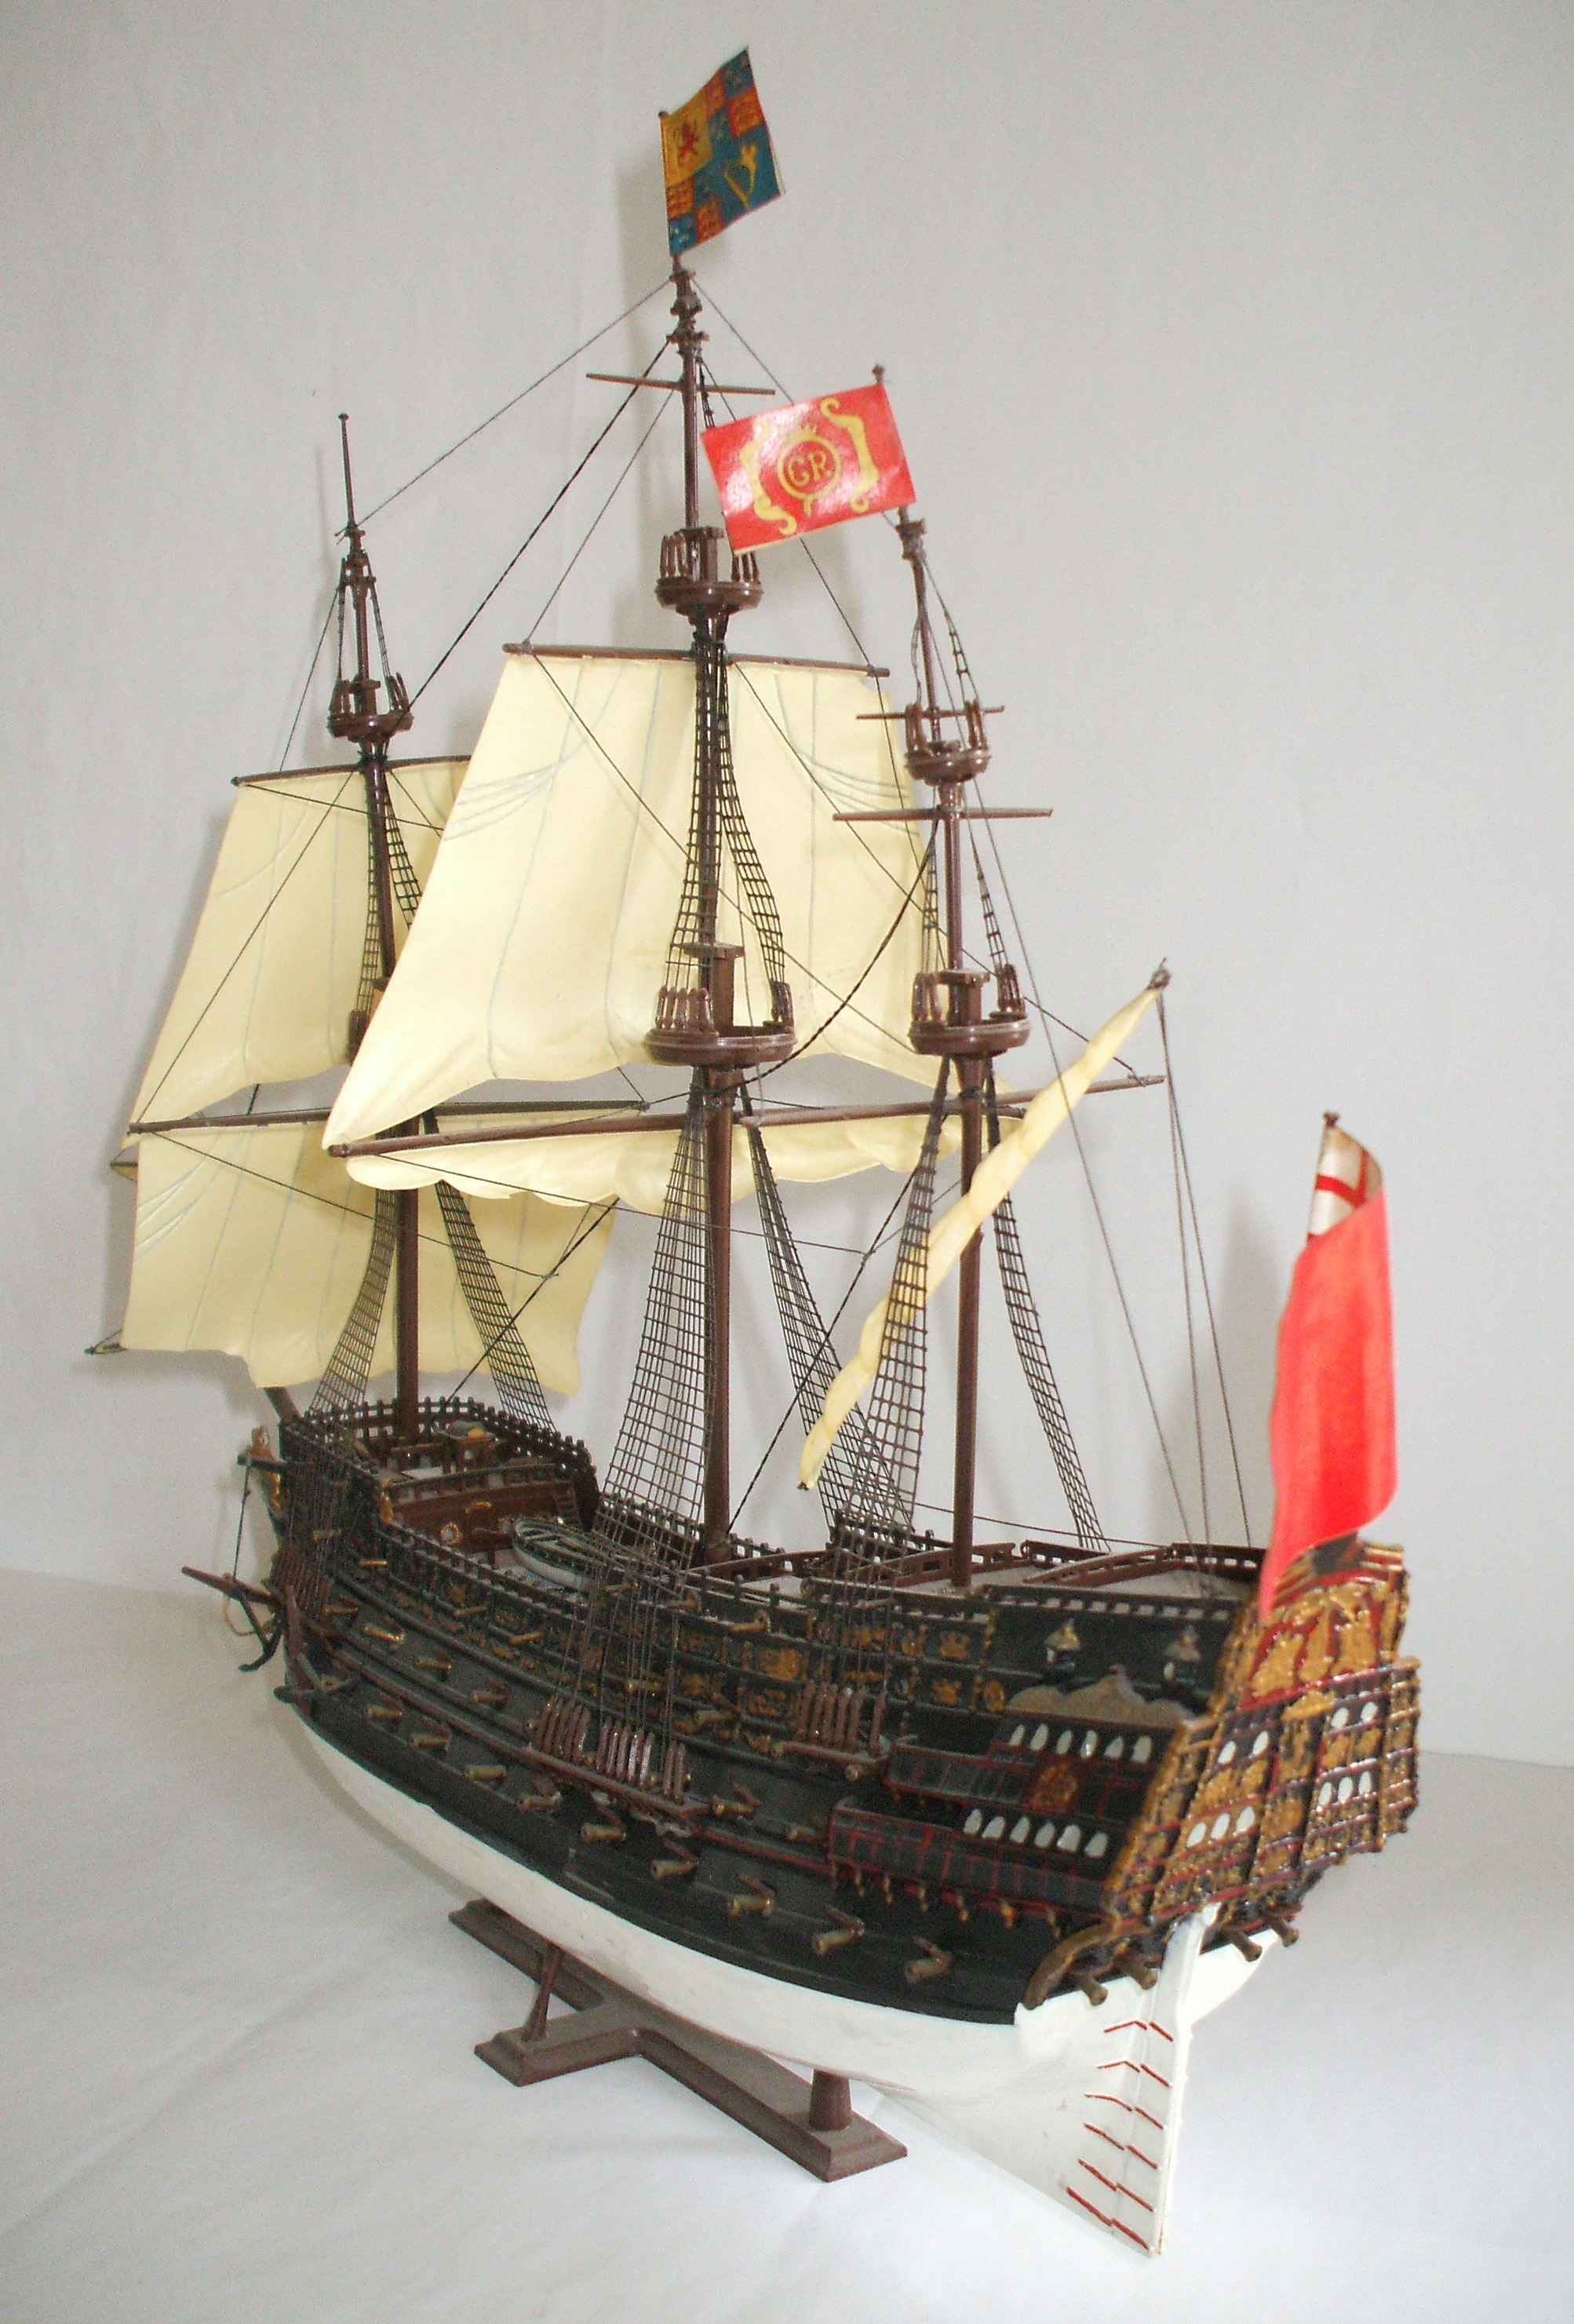 Airfix, Royal Sovereign, Plastic Kit, Galleon, Model Galleon,